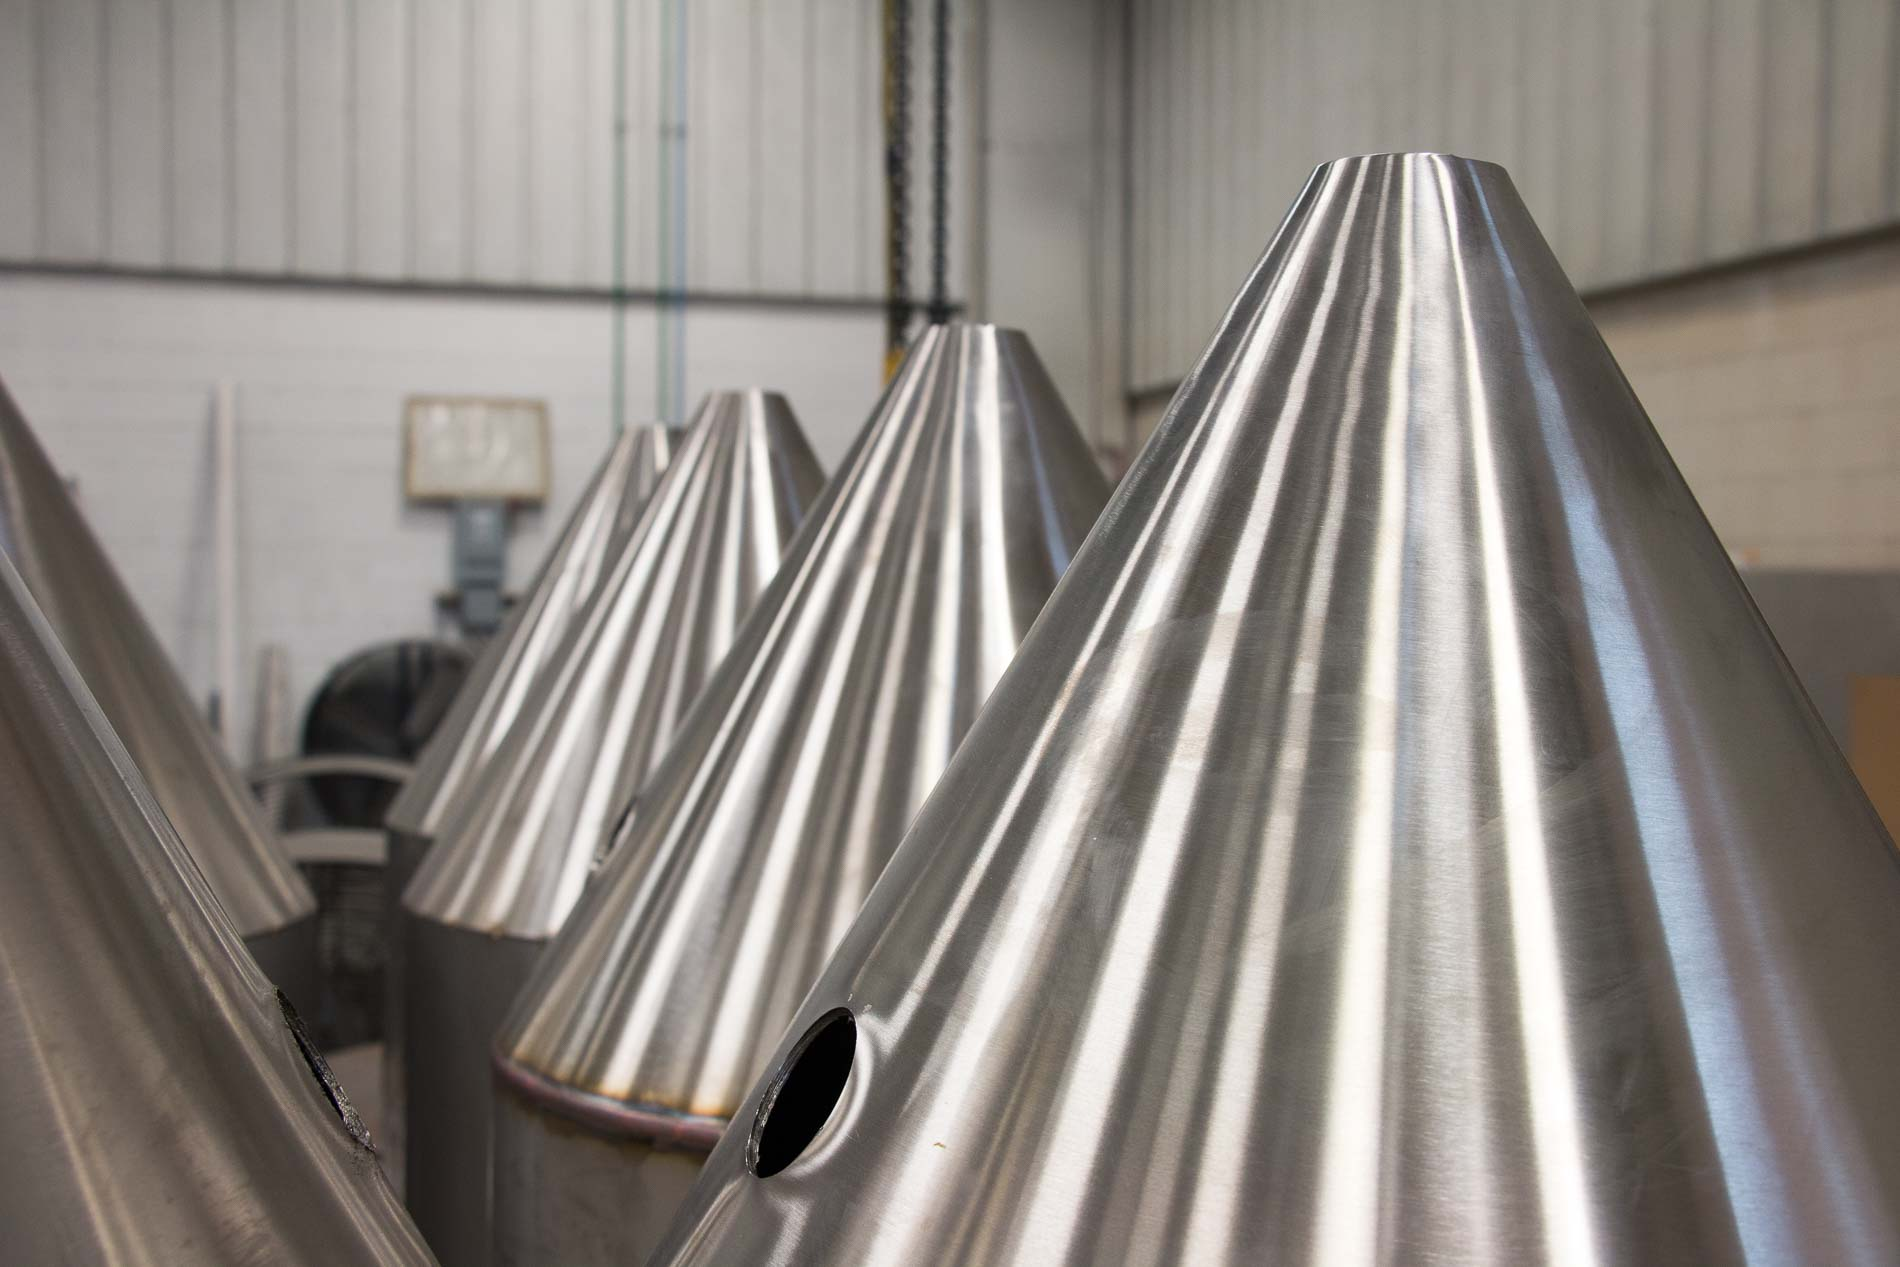 Dairy Industry Fabrication is a Badger Sheet Metal Works Specialty